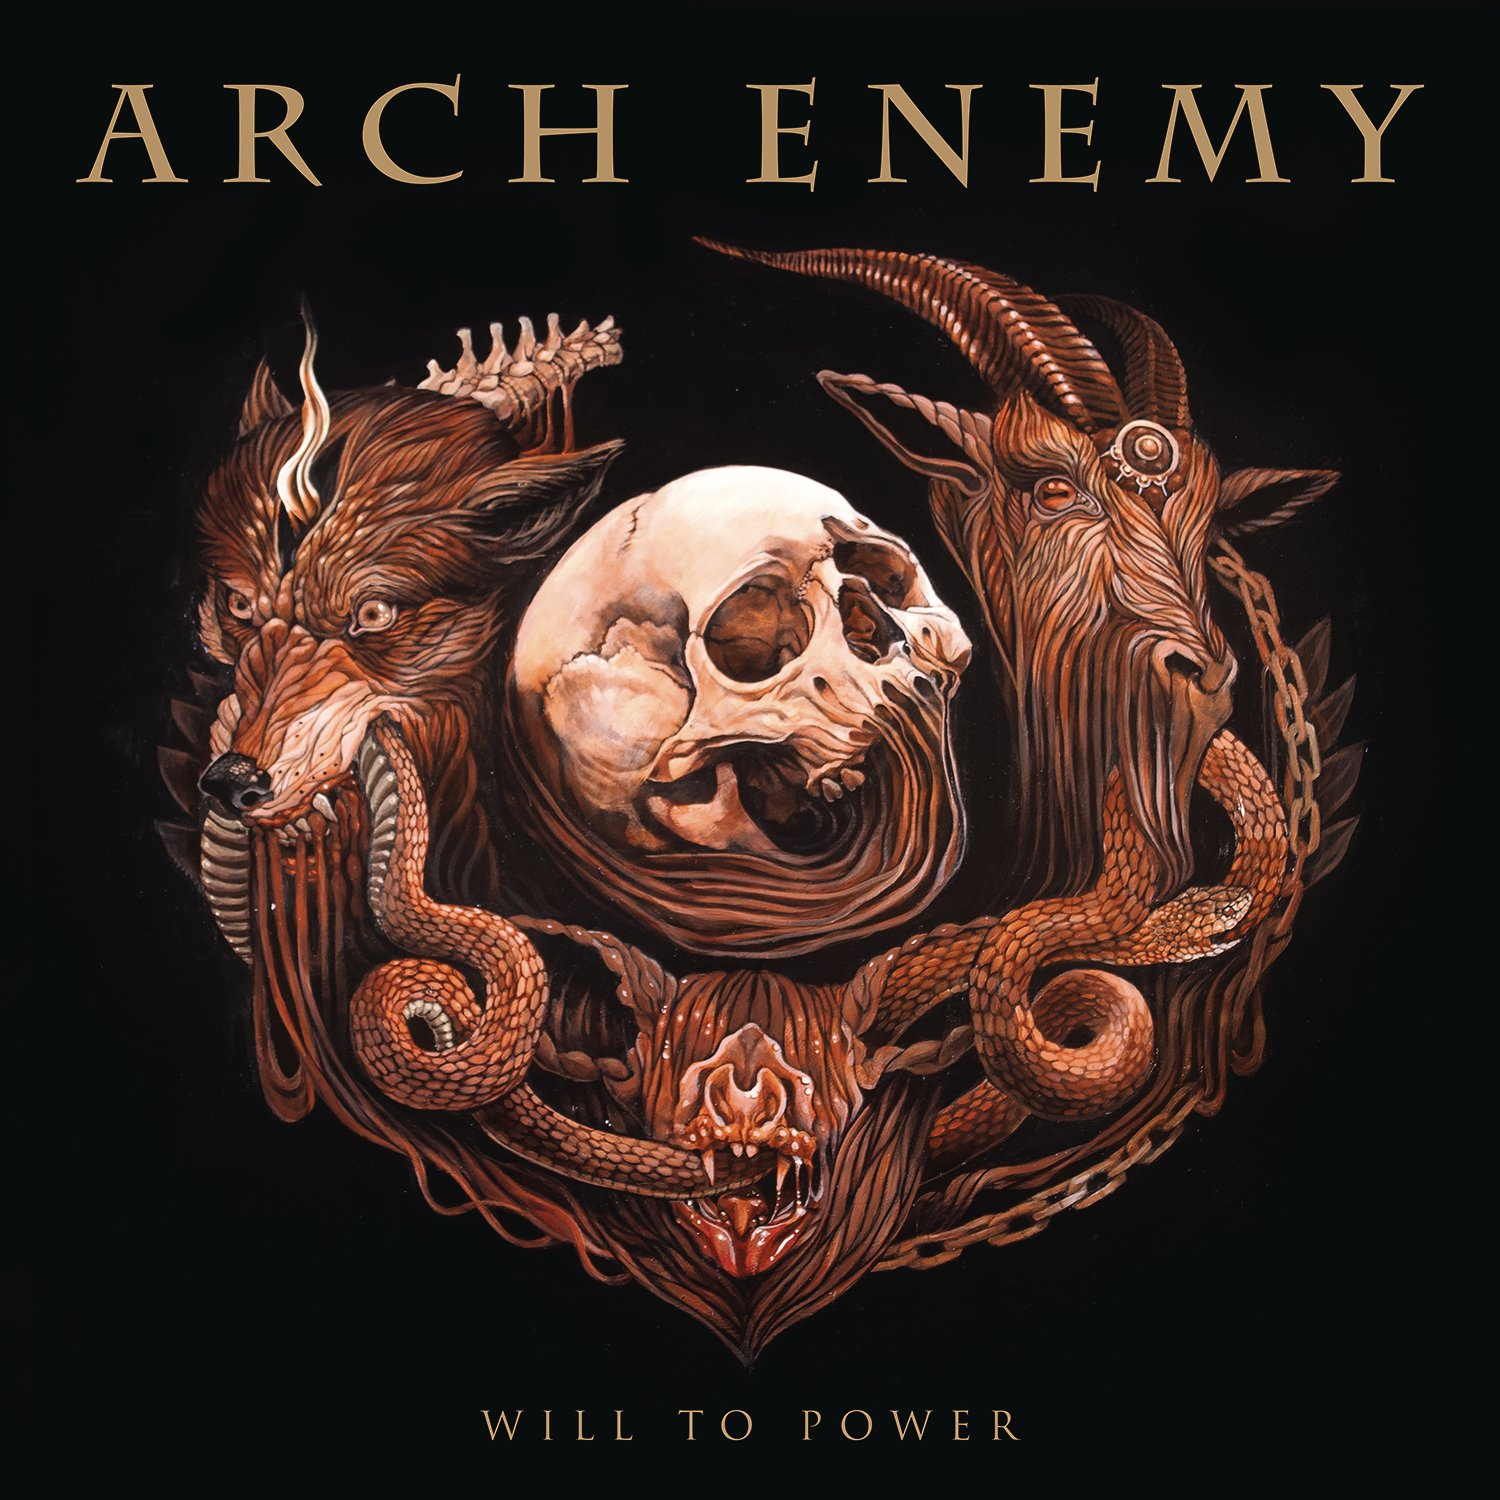 CD : Arch Enemy - Will To Power (Deluxe Edition)